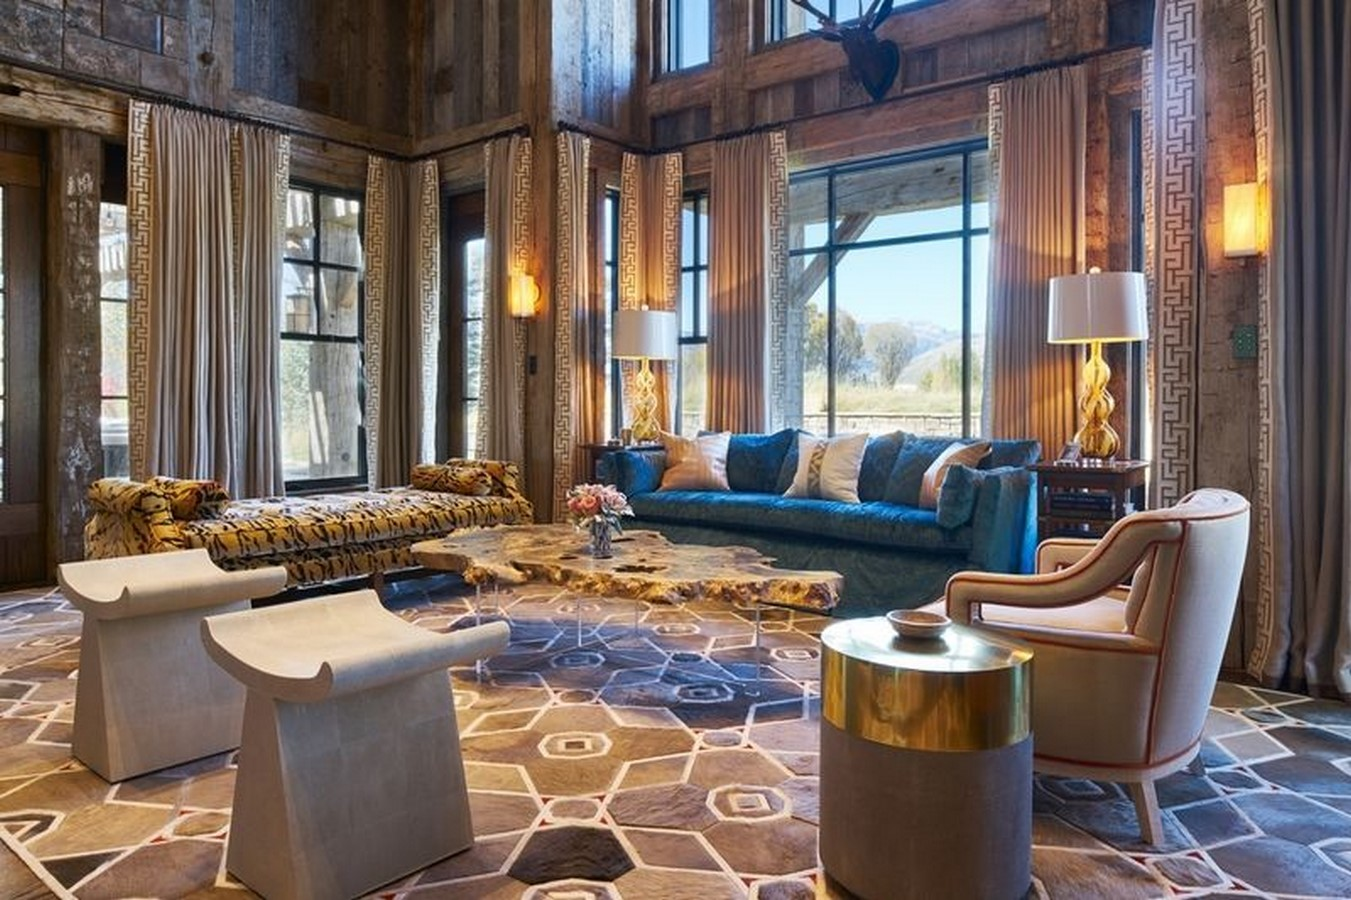 30 Examples of Rustic interiors for living rooms - Sheet17